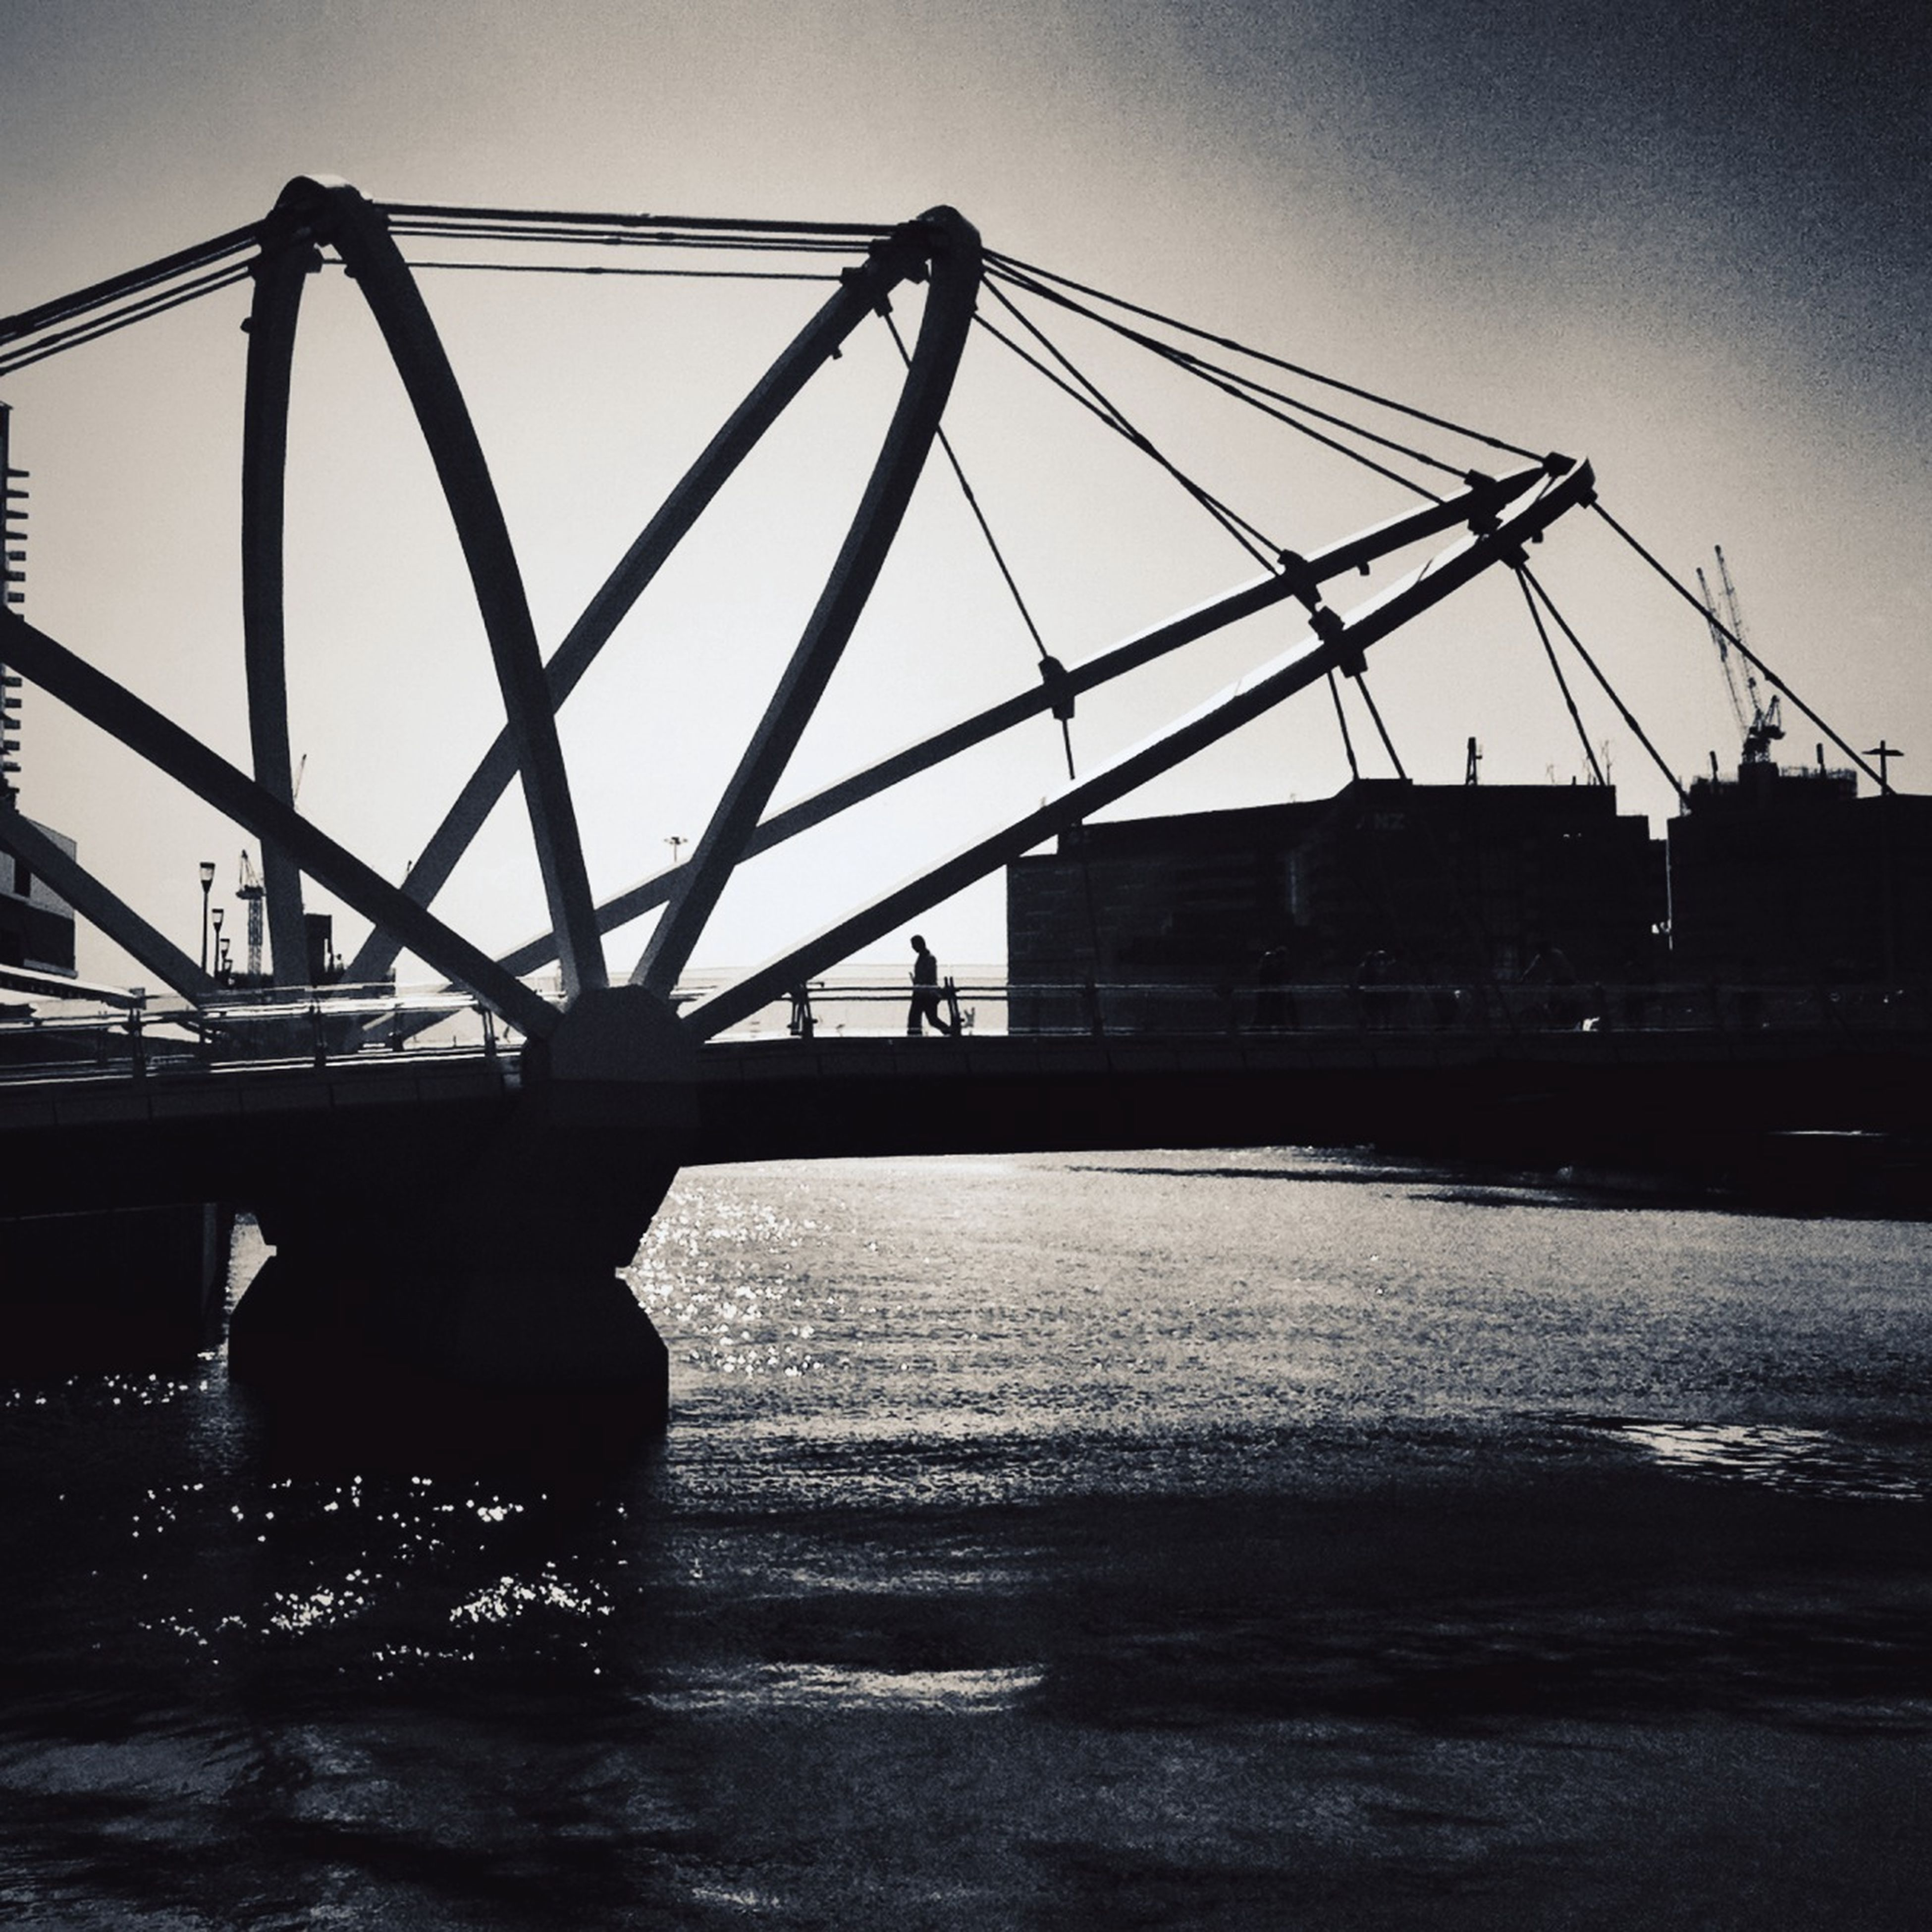 water, transportation, sky, bridge - man made structure, silhouette, built structure, connection, clear sky, river, sunset, architecture, engineering, metal, men, outdoors, leisure activity, mode of transport, dusk